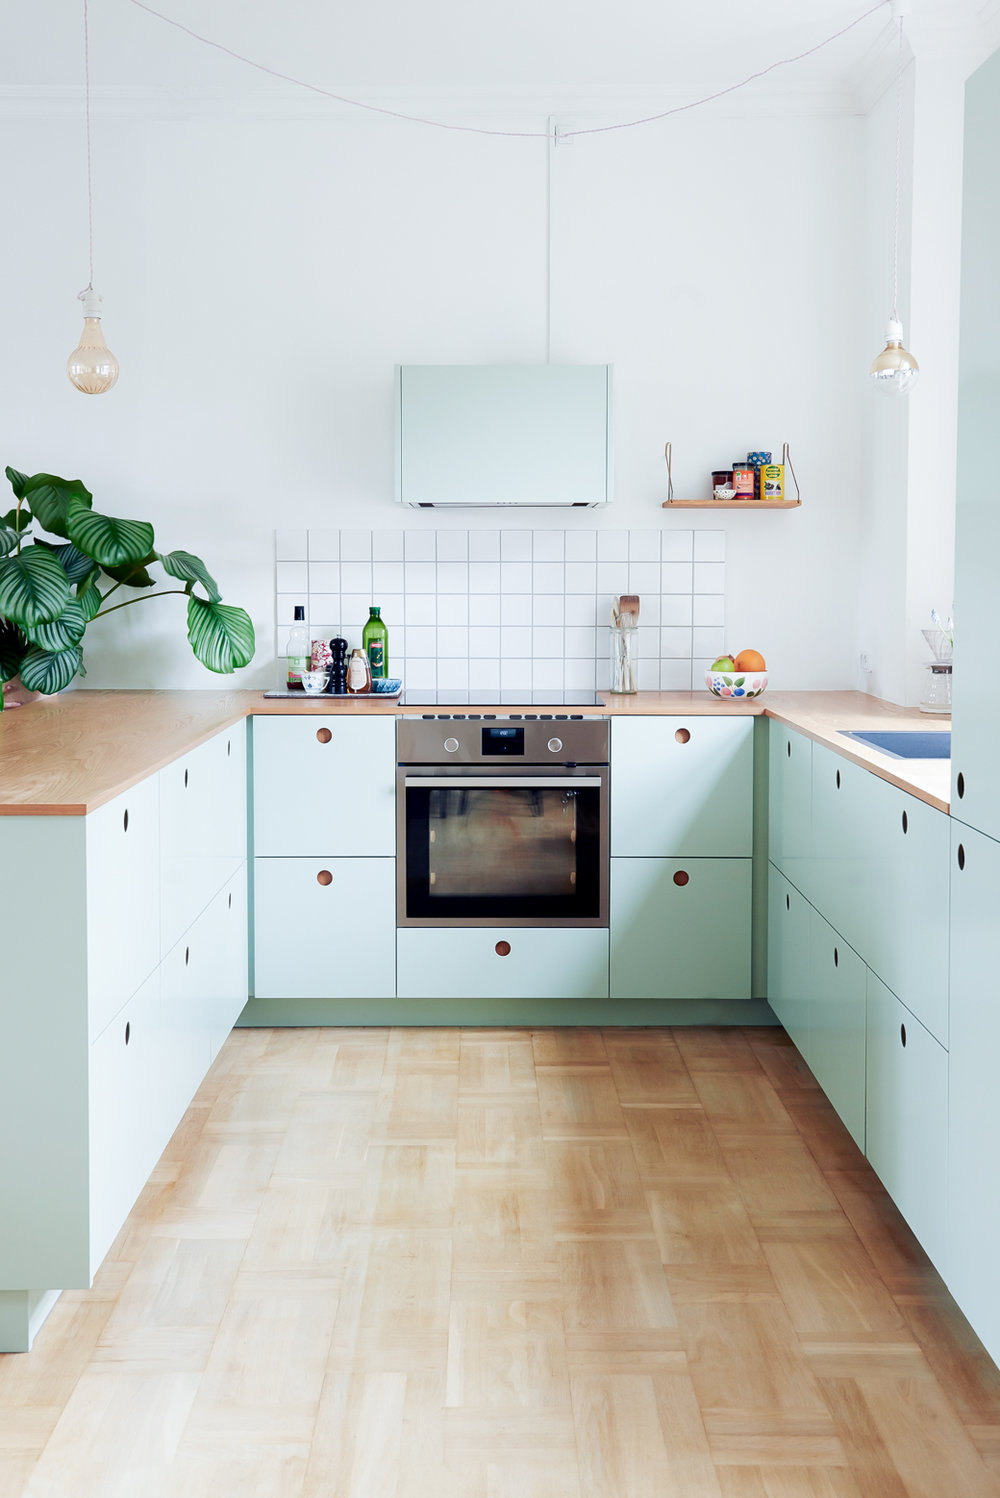 ikea green kitchen ikea kitchen in mint green decor8 1773